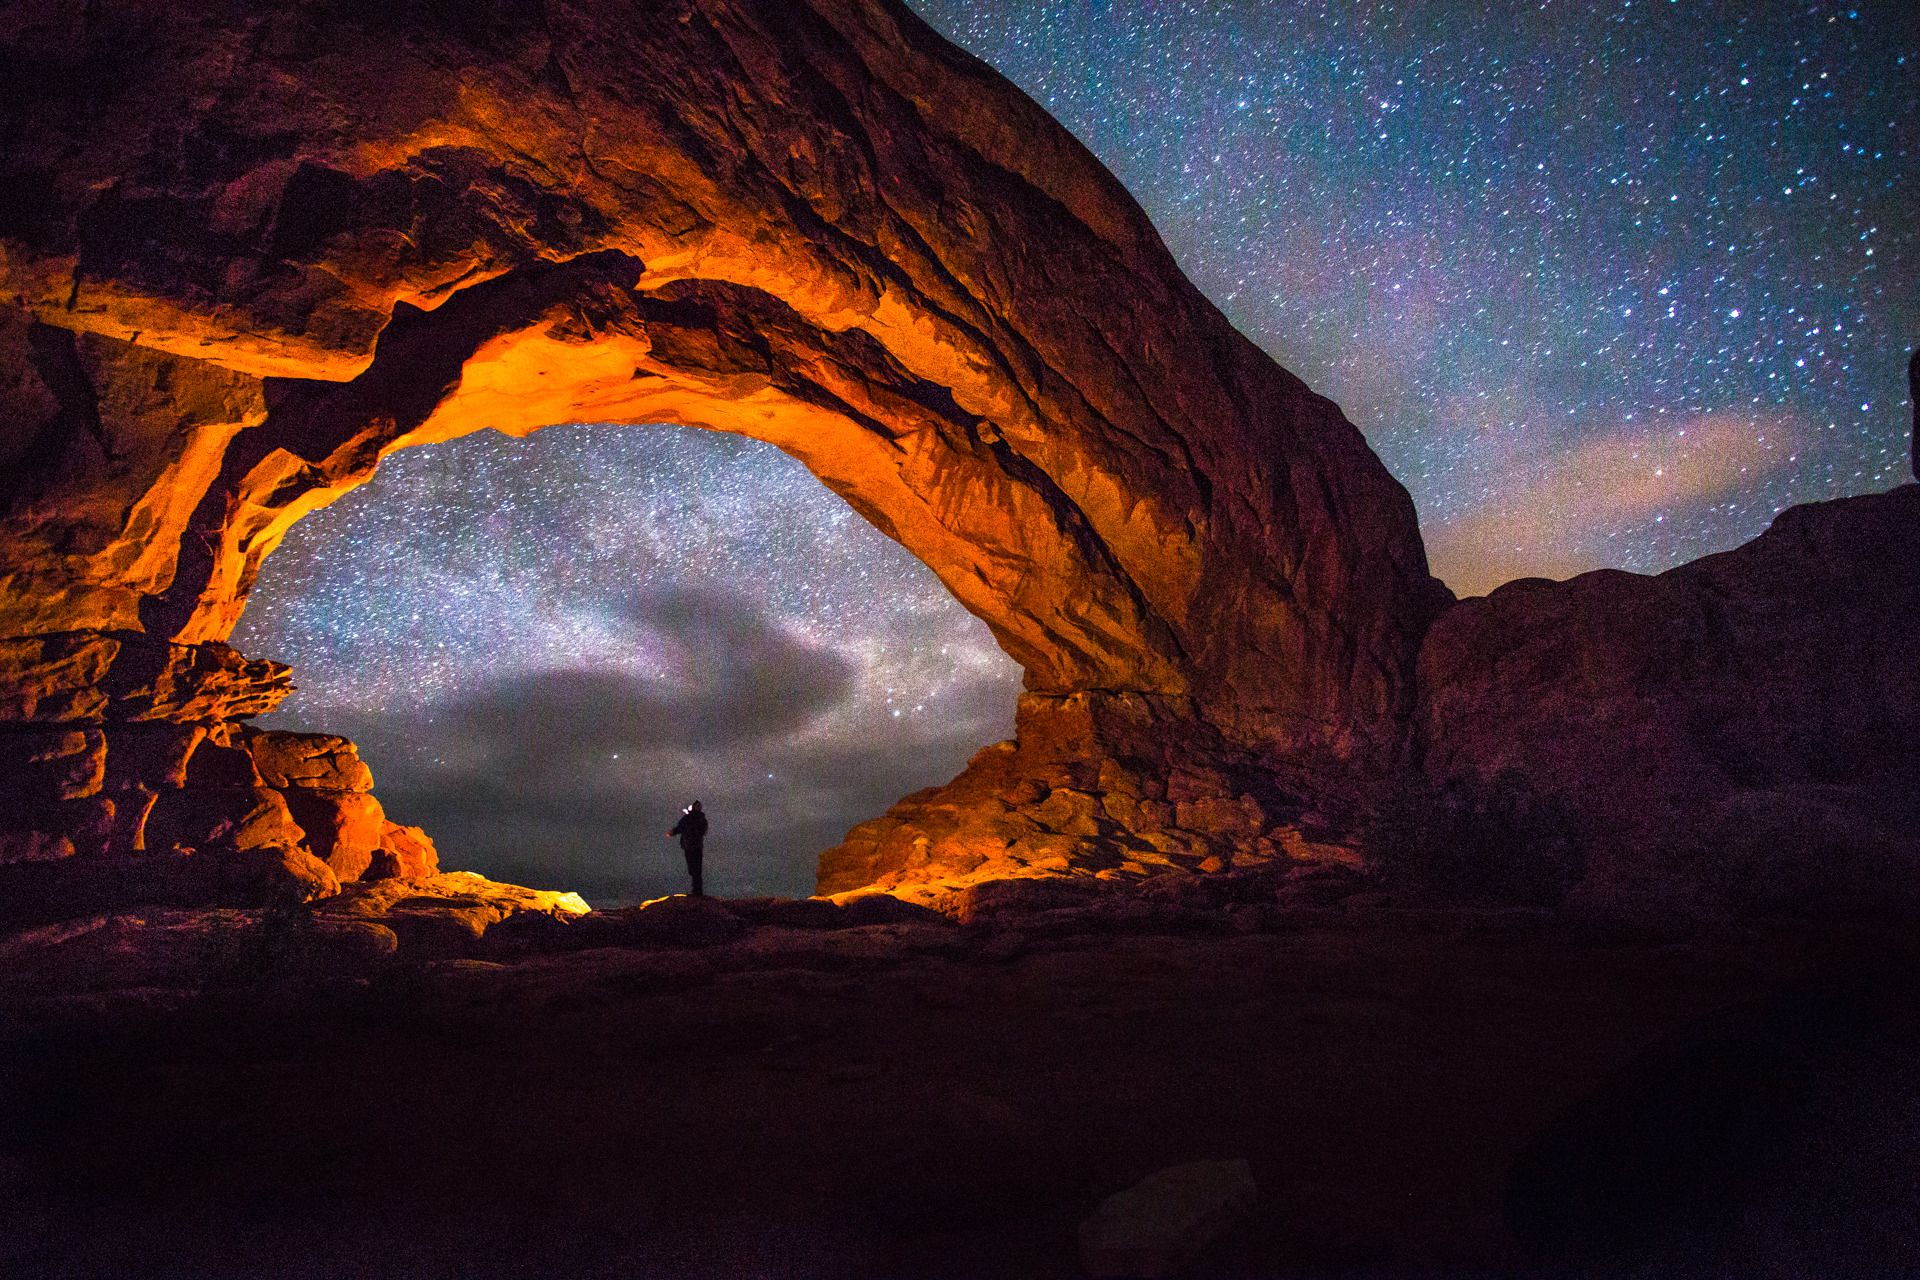 Just me, observing the stars above ancient sandstone landscape of Arches National Park. It's amazing how when we view our earthly environment in its natural state, the more alien it becomes. Single exposure, no composites. Foto: Krishan Bansal, Shortlist, Youth Competition, 2015 Sony World Photography Awards